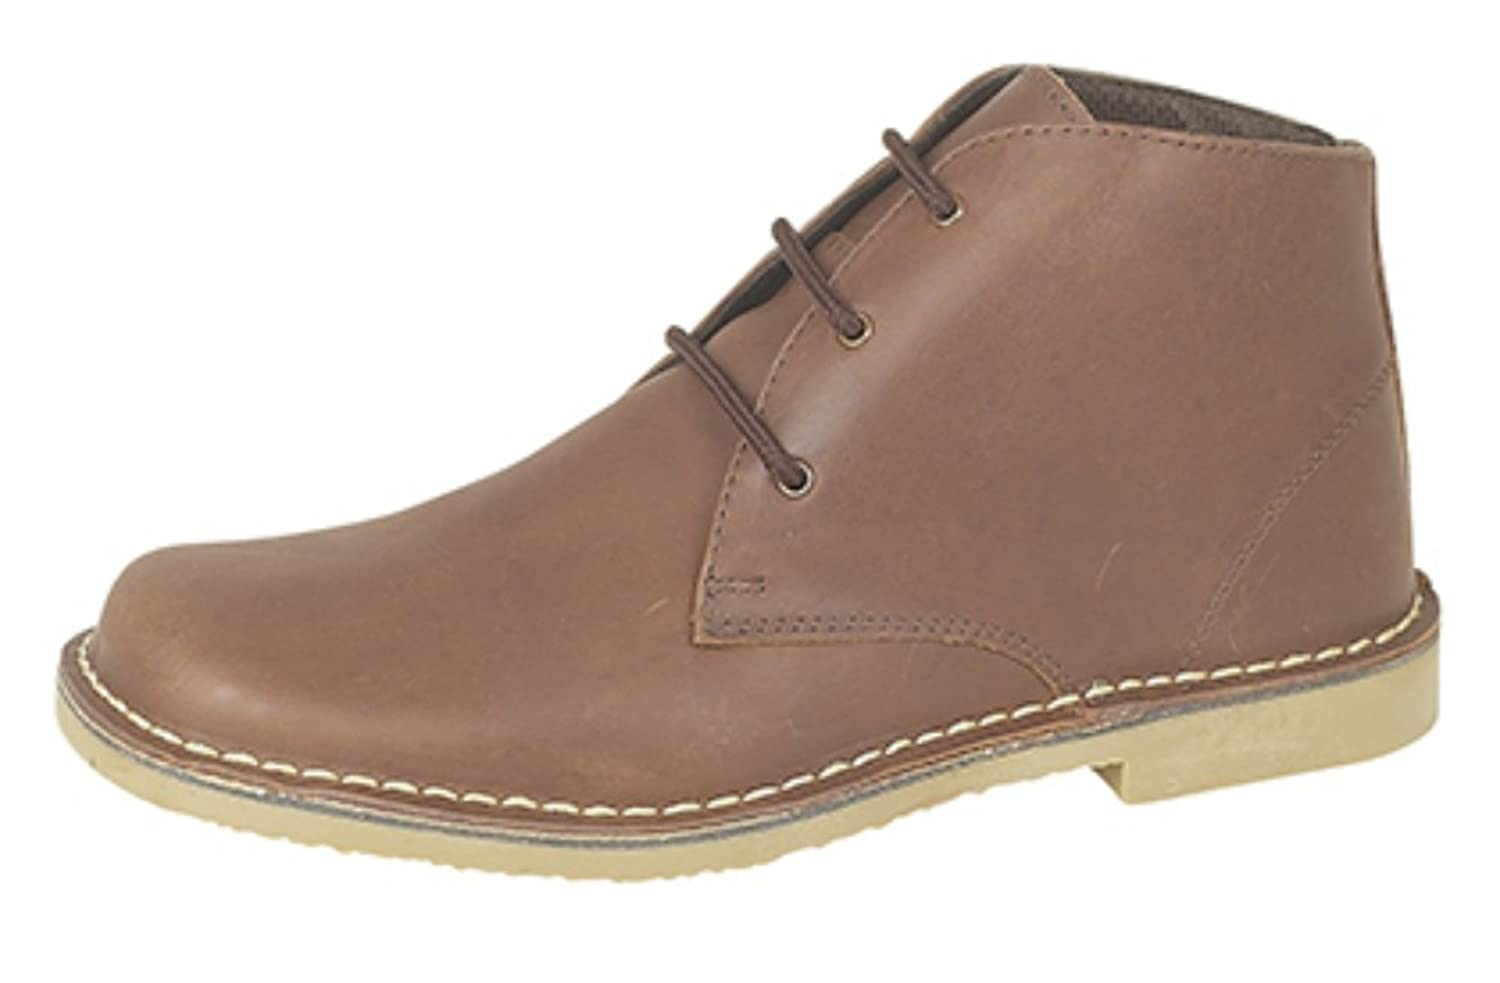 0caff2251b910a Roamers 3 Eyelet Desert Boots In Suede Or Waxy Leather Finish. 5 Colours.  Sizes